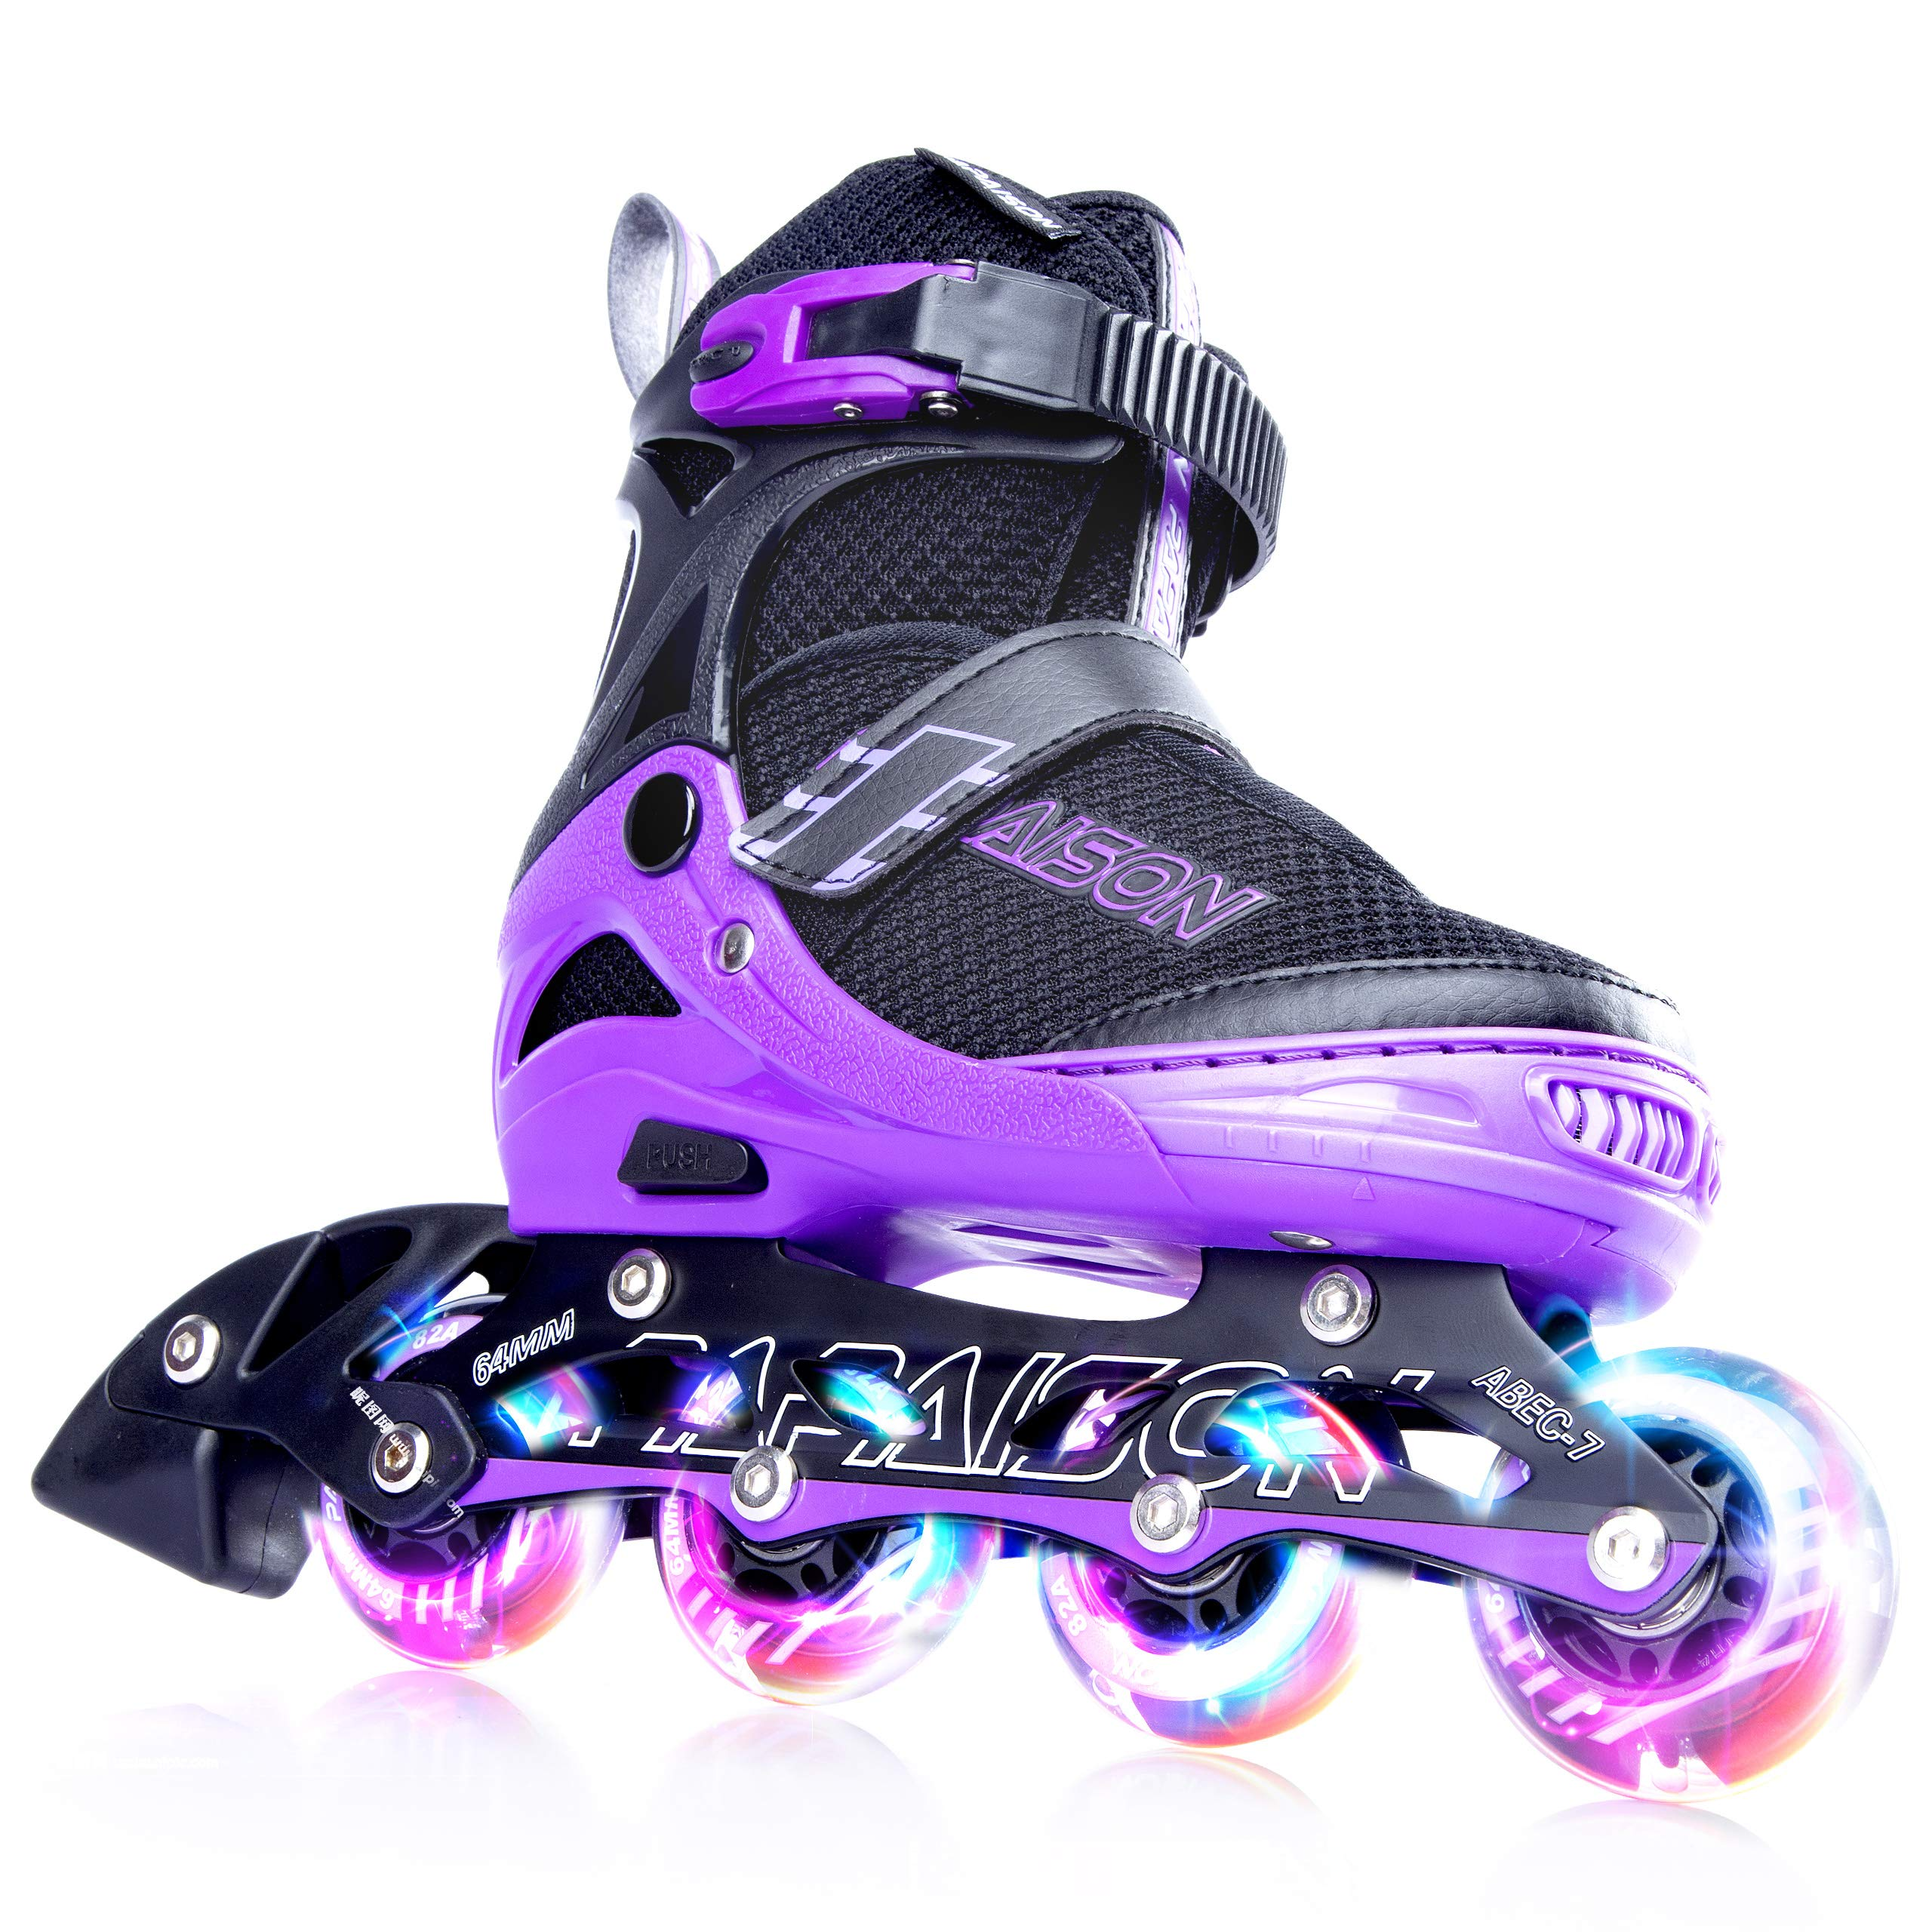 PAPAISON SPORTS Adjustable Inline Skates for Kids and Adults with Full Light Up LED Wheels, Outdoor Rollerblades for Girls and Boys, Men and Women by PAPAISON SPORTS (Image #1)